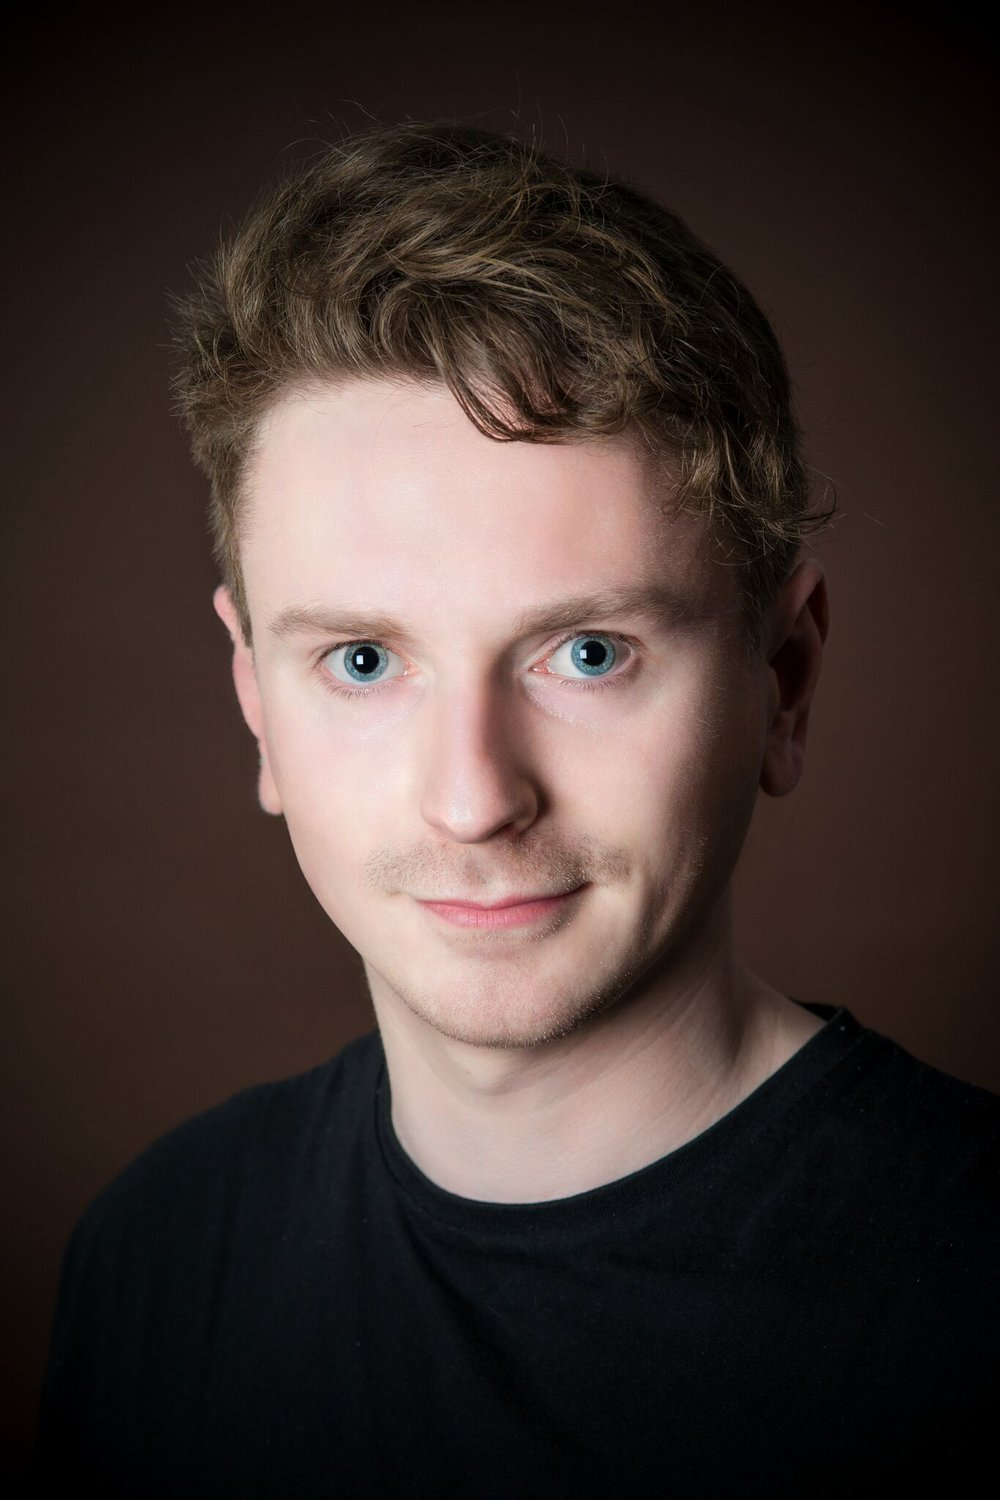 William Foote - Core Artist Currently playing Rhys in NWT's summer tour of Kara Sevda going to Ithaca, Tampa, Minnesota, Portland, D.C., and Edinburgh. He originated the role in their first production at the 2016 Edinburgh Fringe Festival.